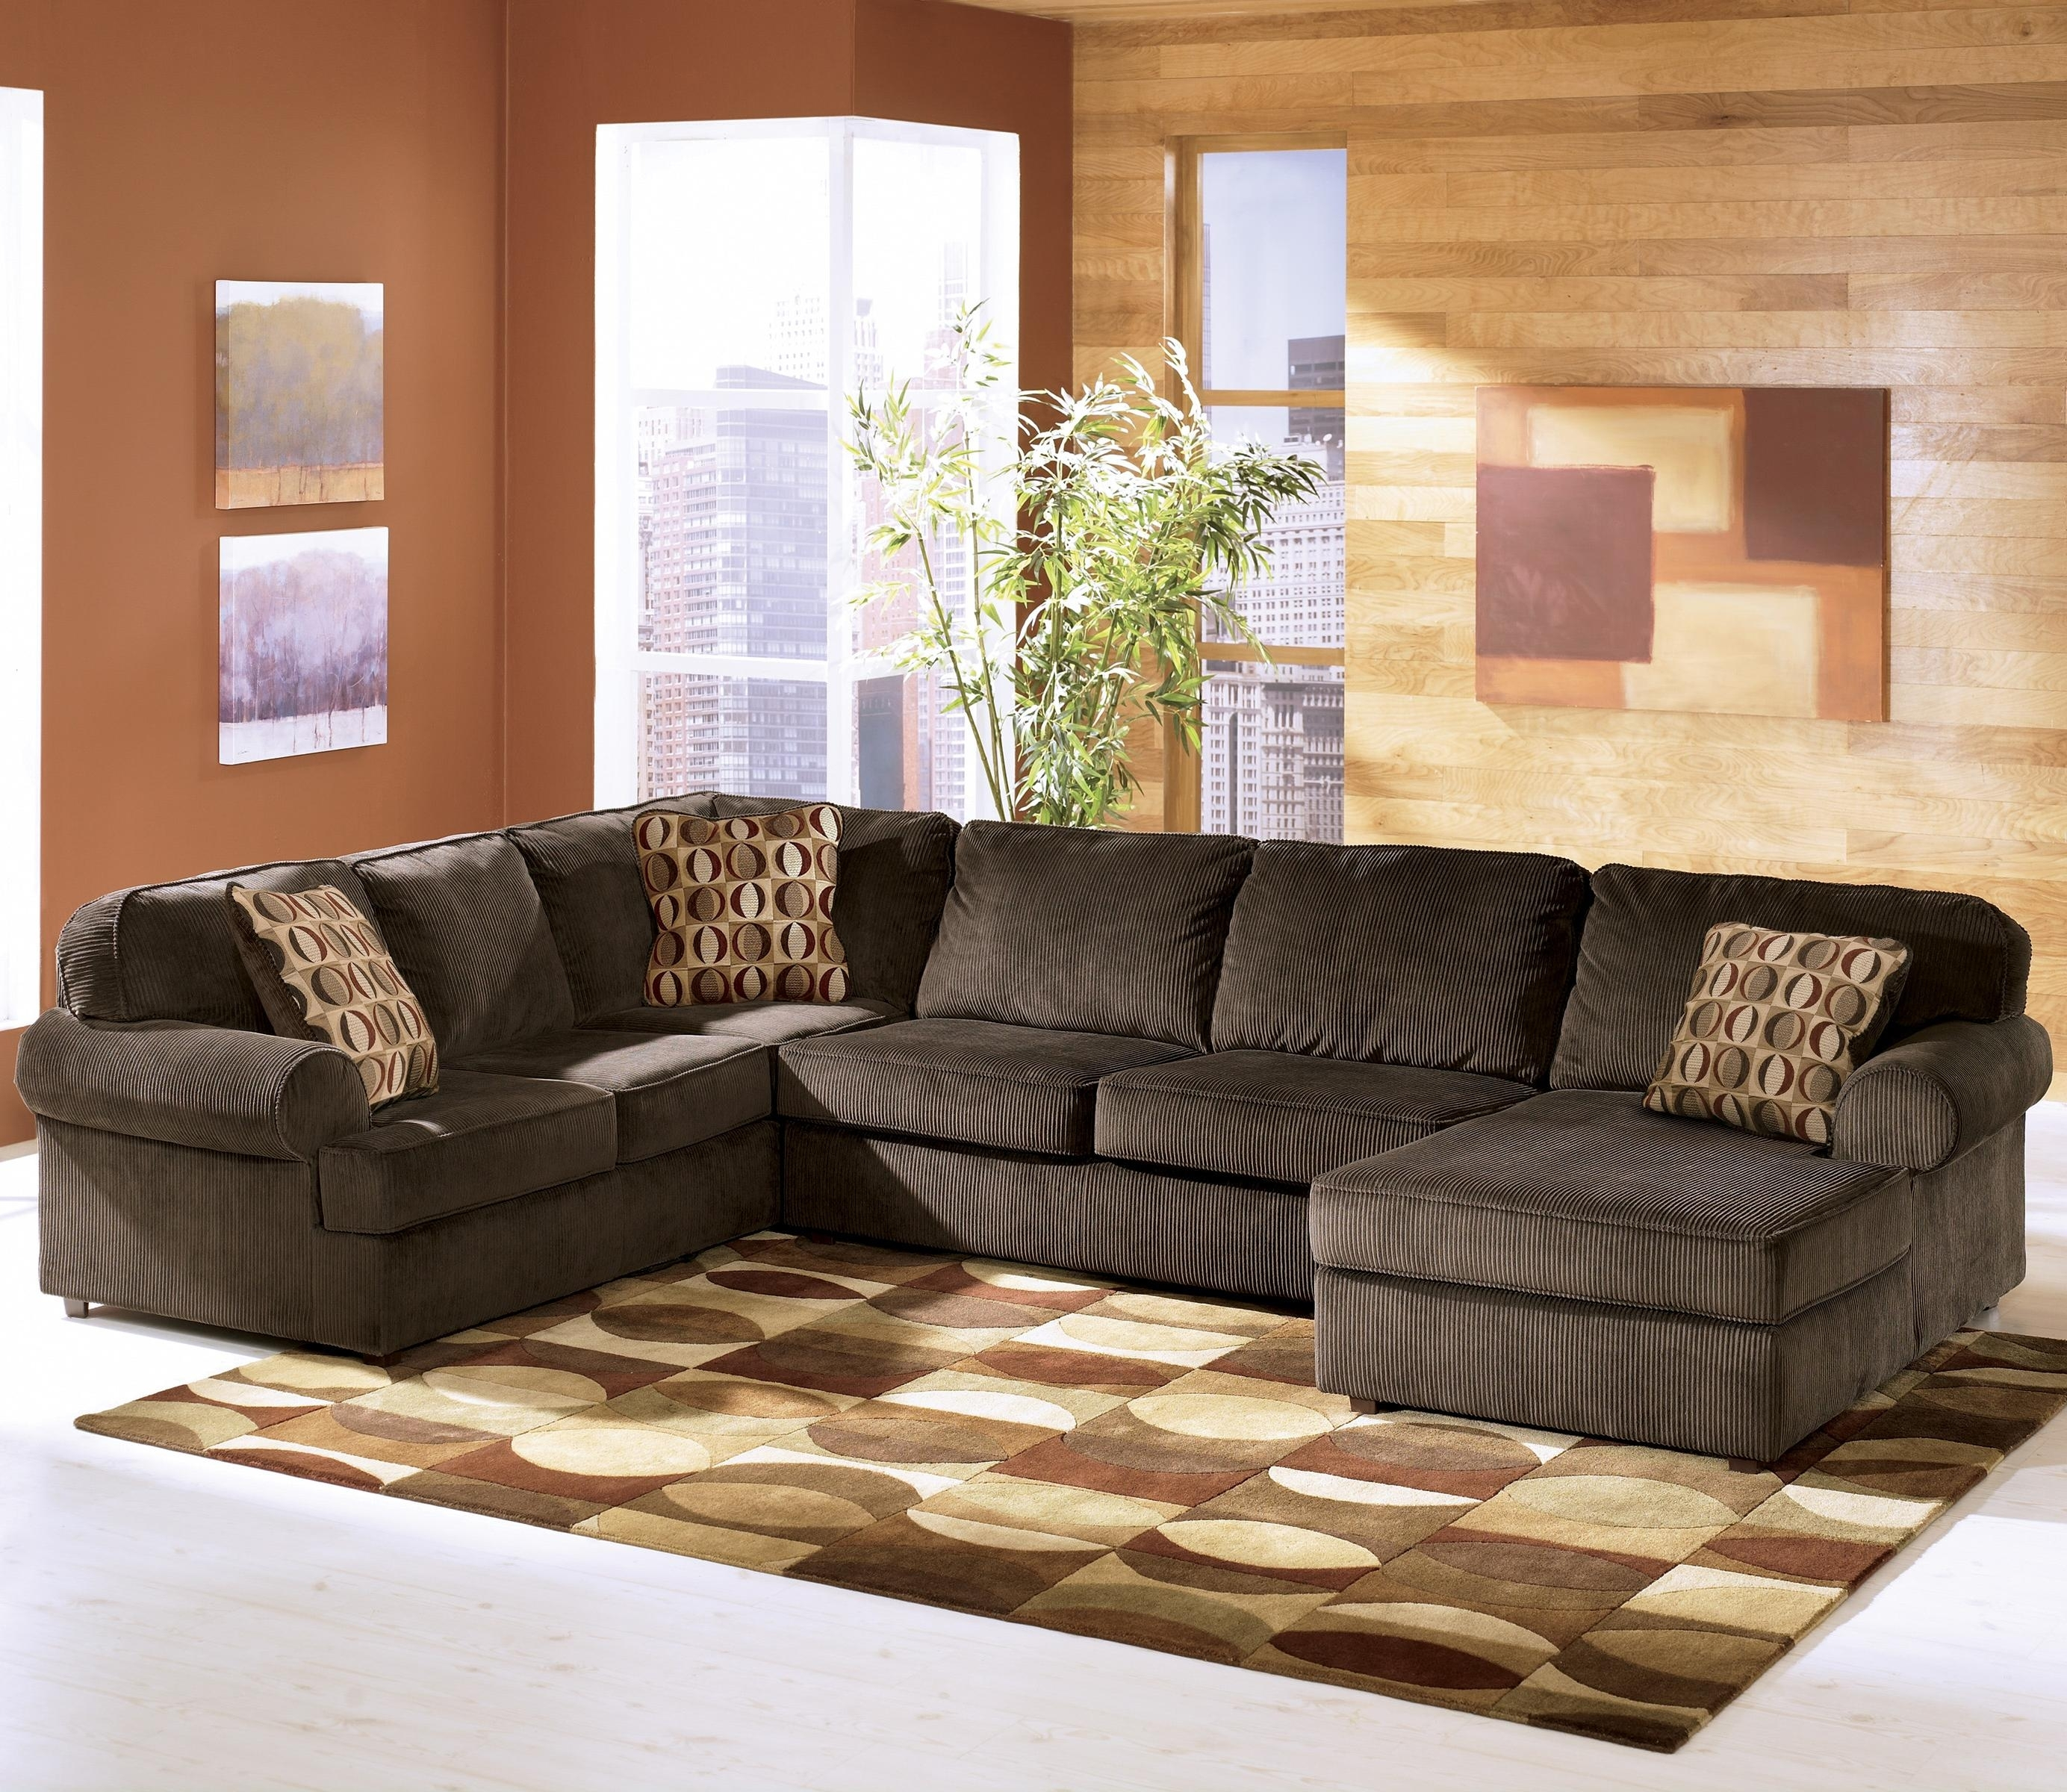 Ashley Furniture Vista – Chocolate Casual 3 Piece Sectional With With Regard To Lucy Dark Grey 2 Piece Sectionals With Laf Chaise (View 18 of 25)